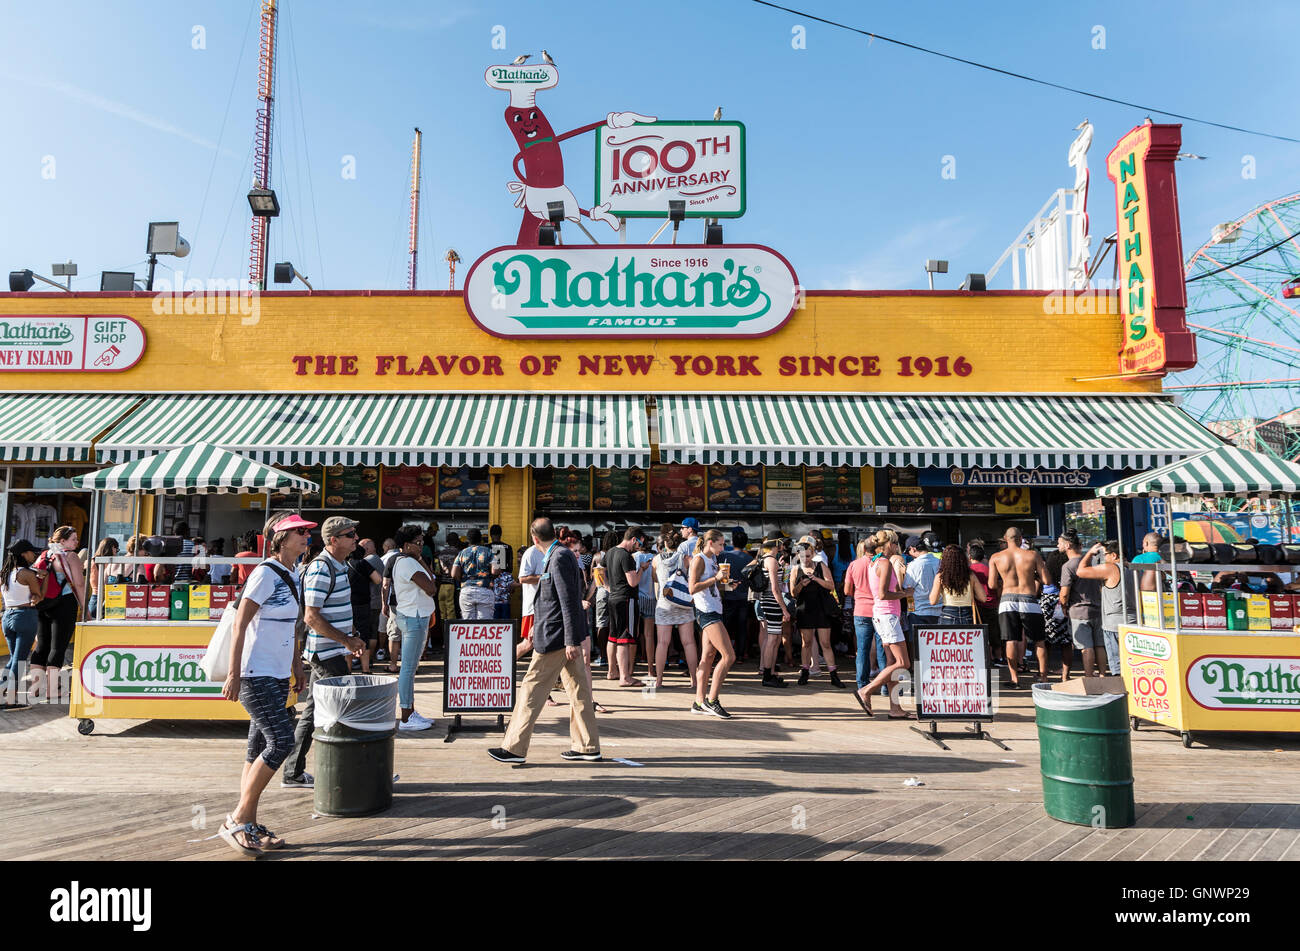 Exterior view of iconic Nathan's Famous hotdog joint on Coney Island boardwalk in Summer, New York. - Stock Image